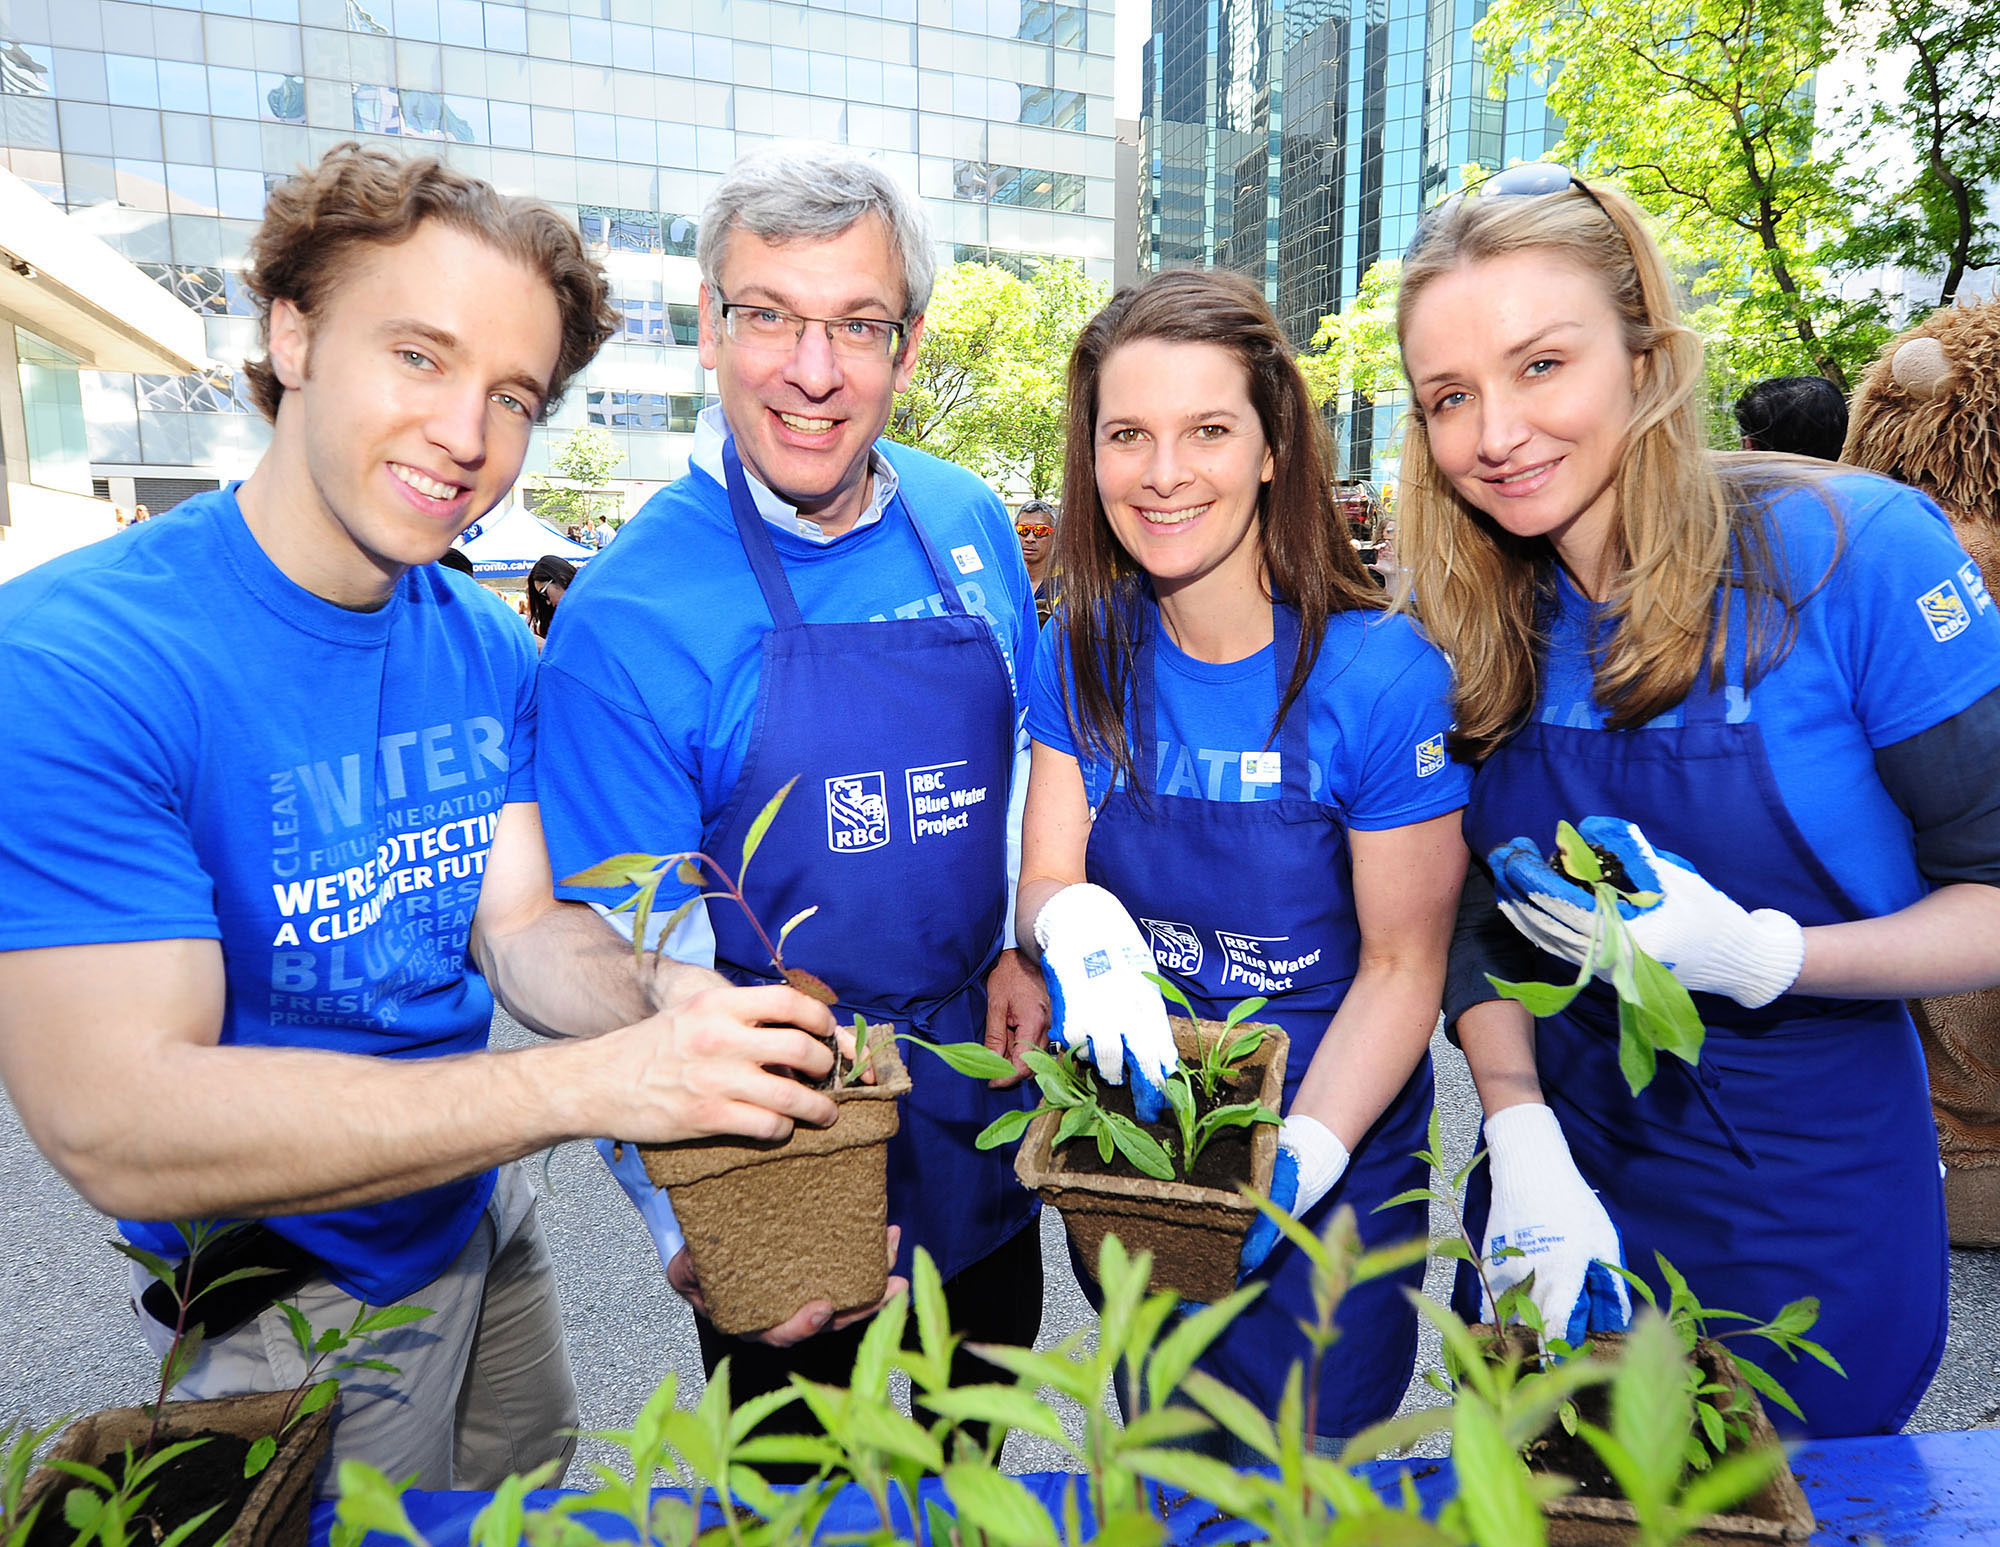 RBC employees celebrating RBC Blue Water Day in 2013 by planting more than 2,500 water-friendly gardens. The gardens were transplanted to the lower Don Valley River and Rouge Park to help protect water in Toronto. (CNW Group/RBC).